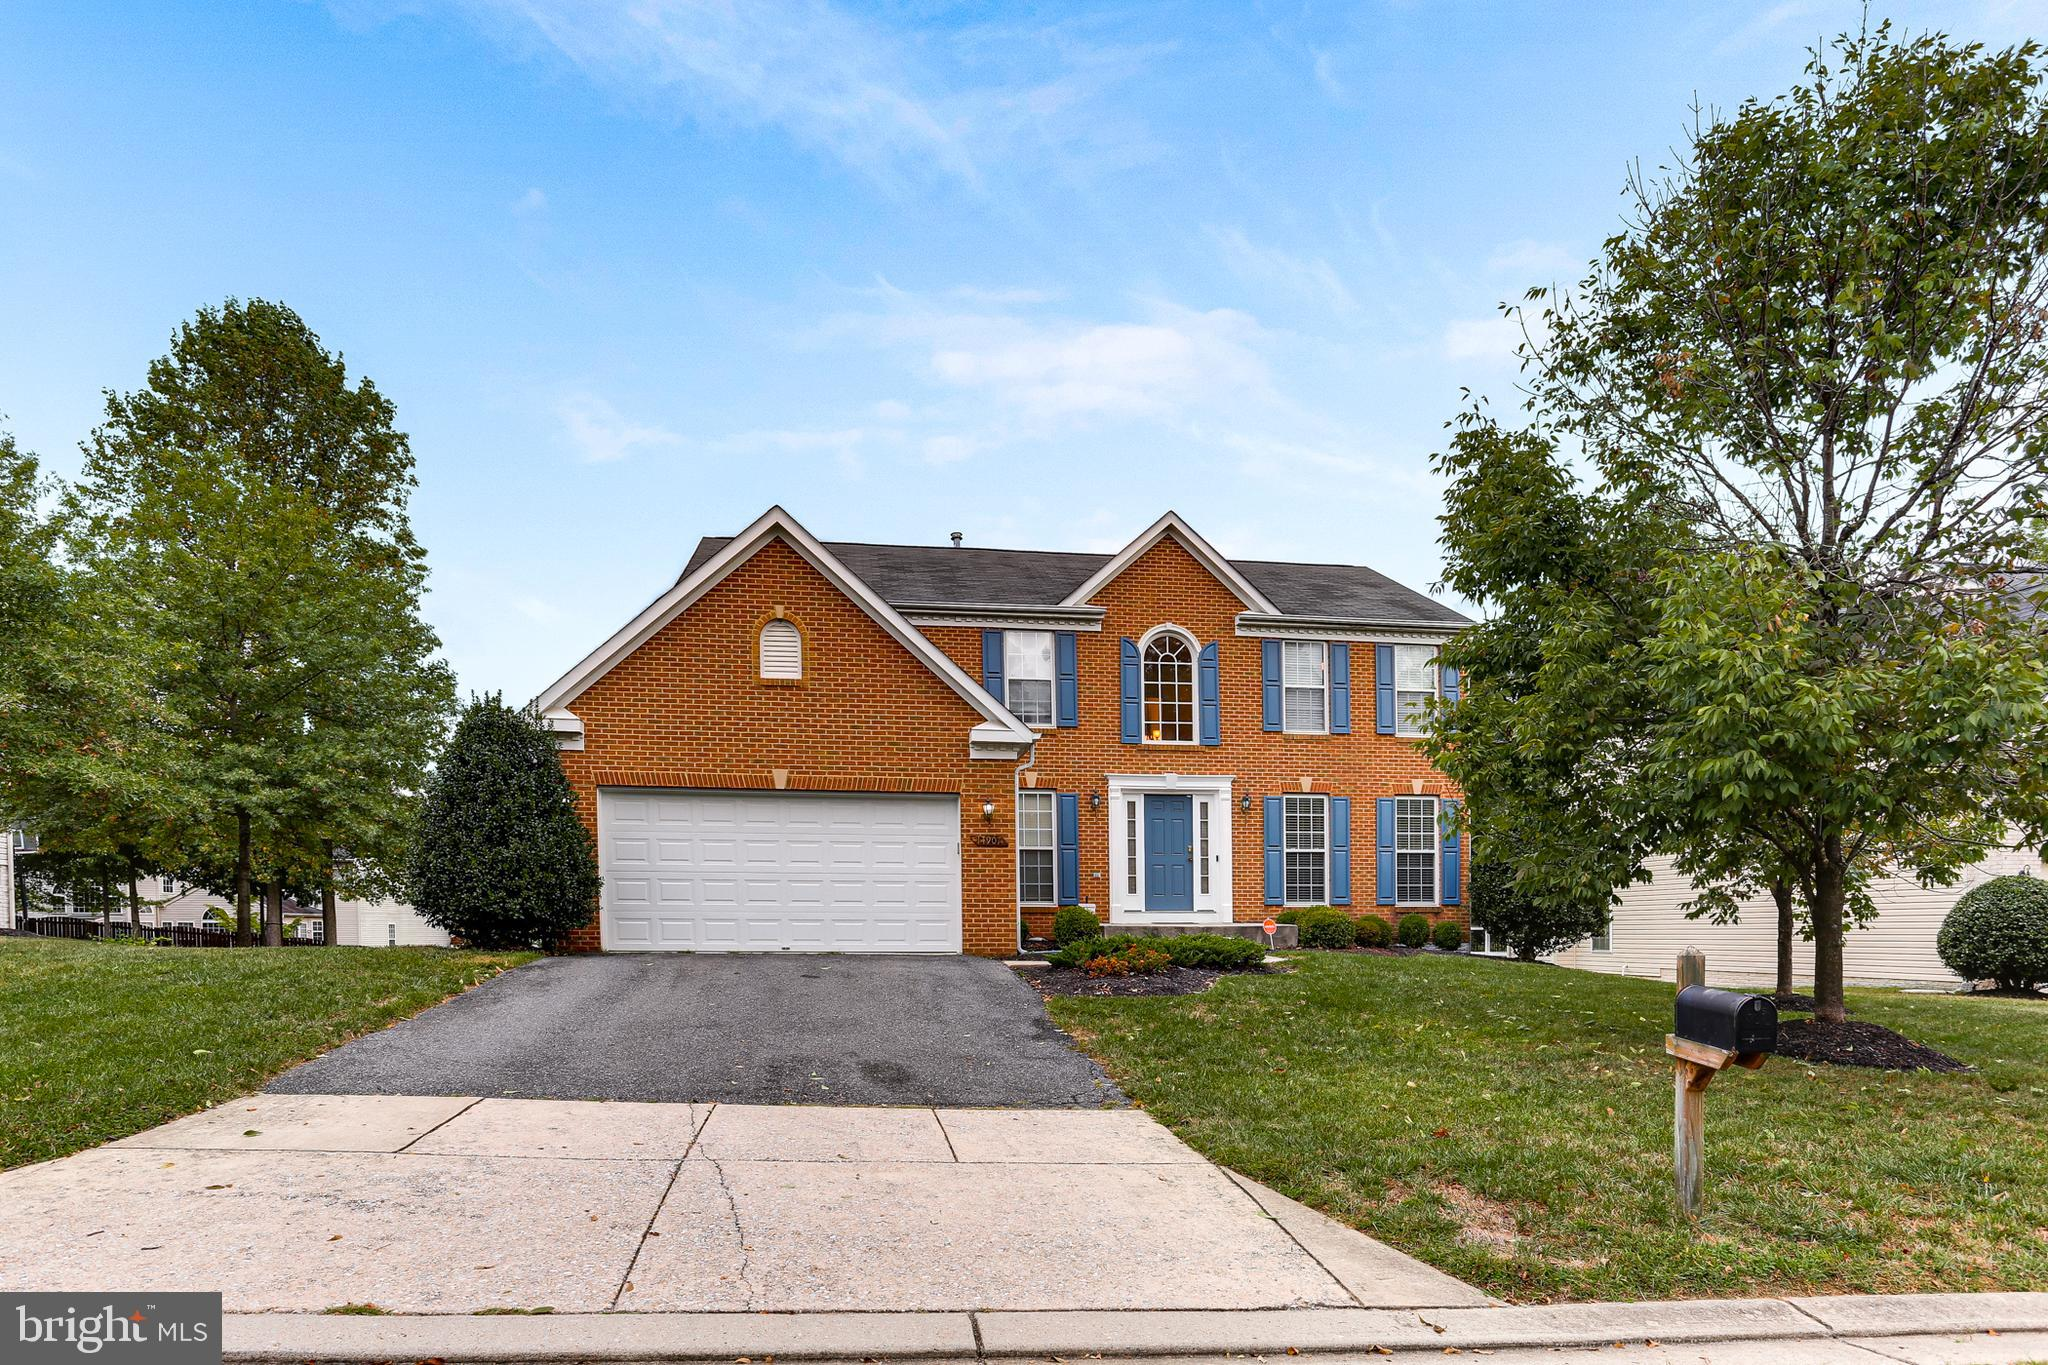 14907 RUNNING HORSE PLACE, BOWIE, MD 20715